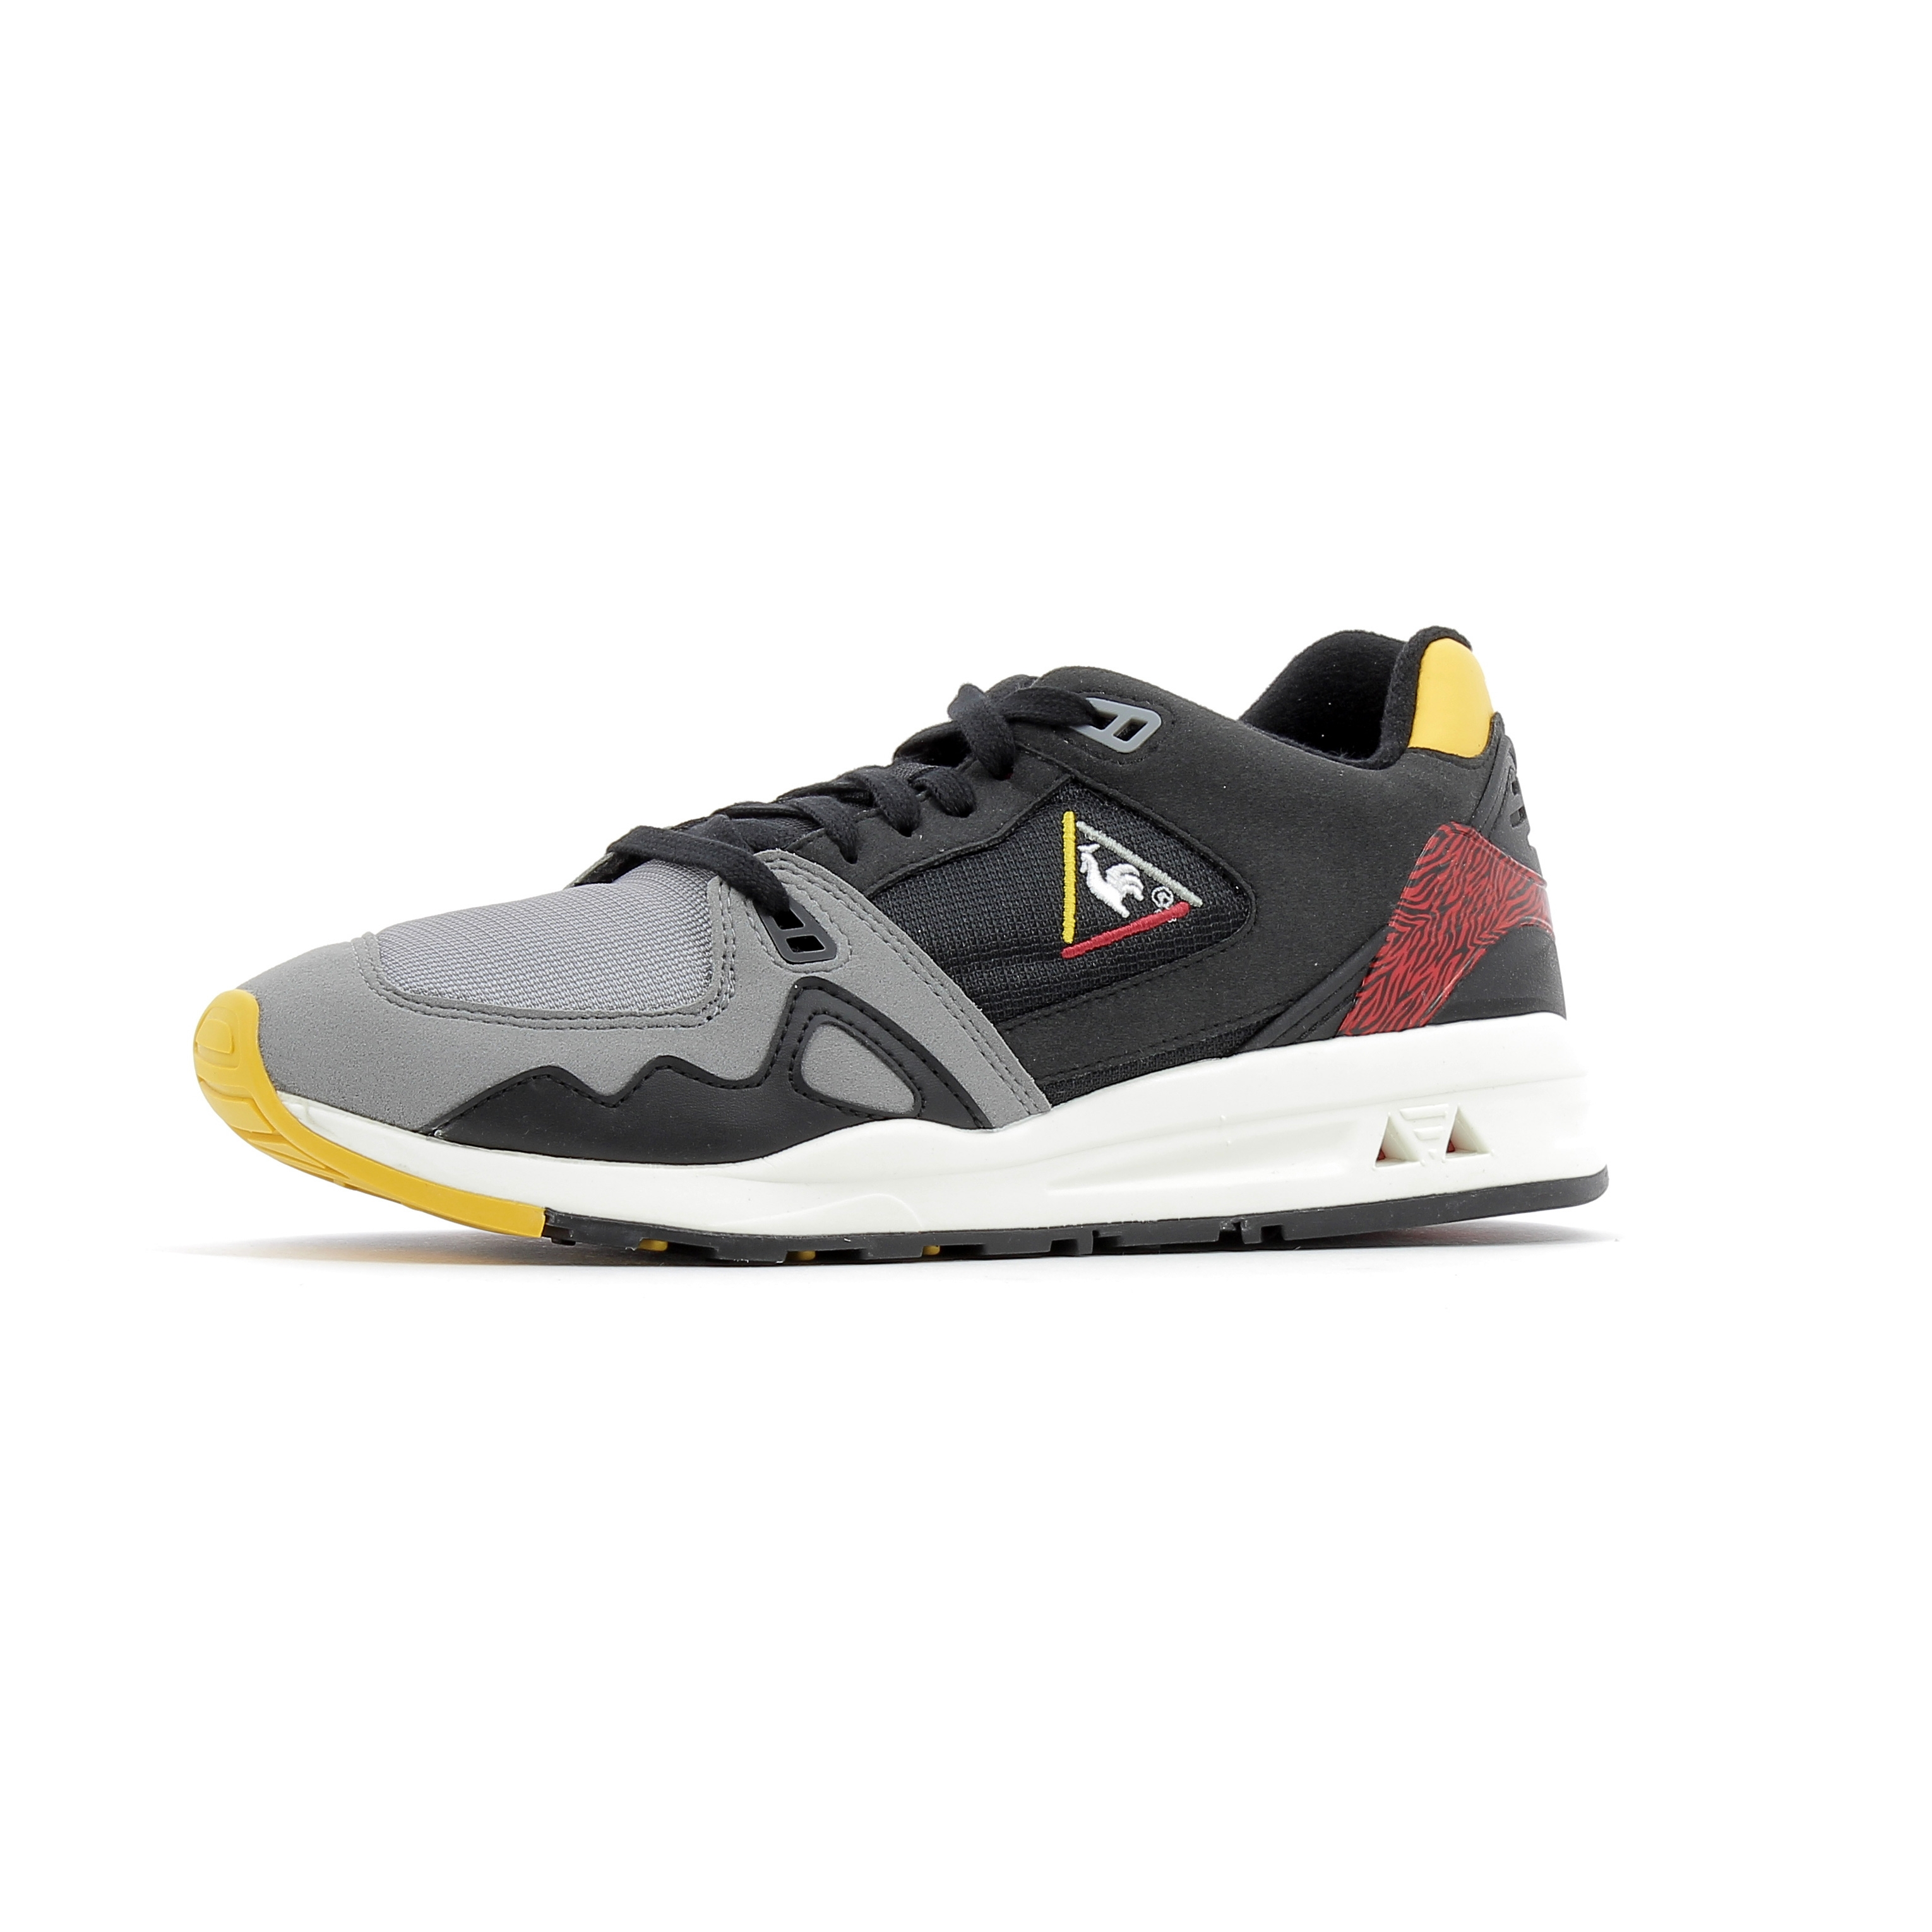 d99ab5442179 Chaussures basses Le Coq Sportif LCS R1000 90 S GRAPHIC